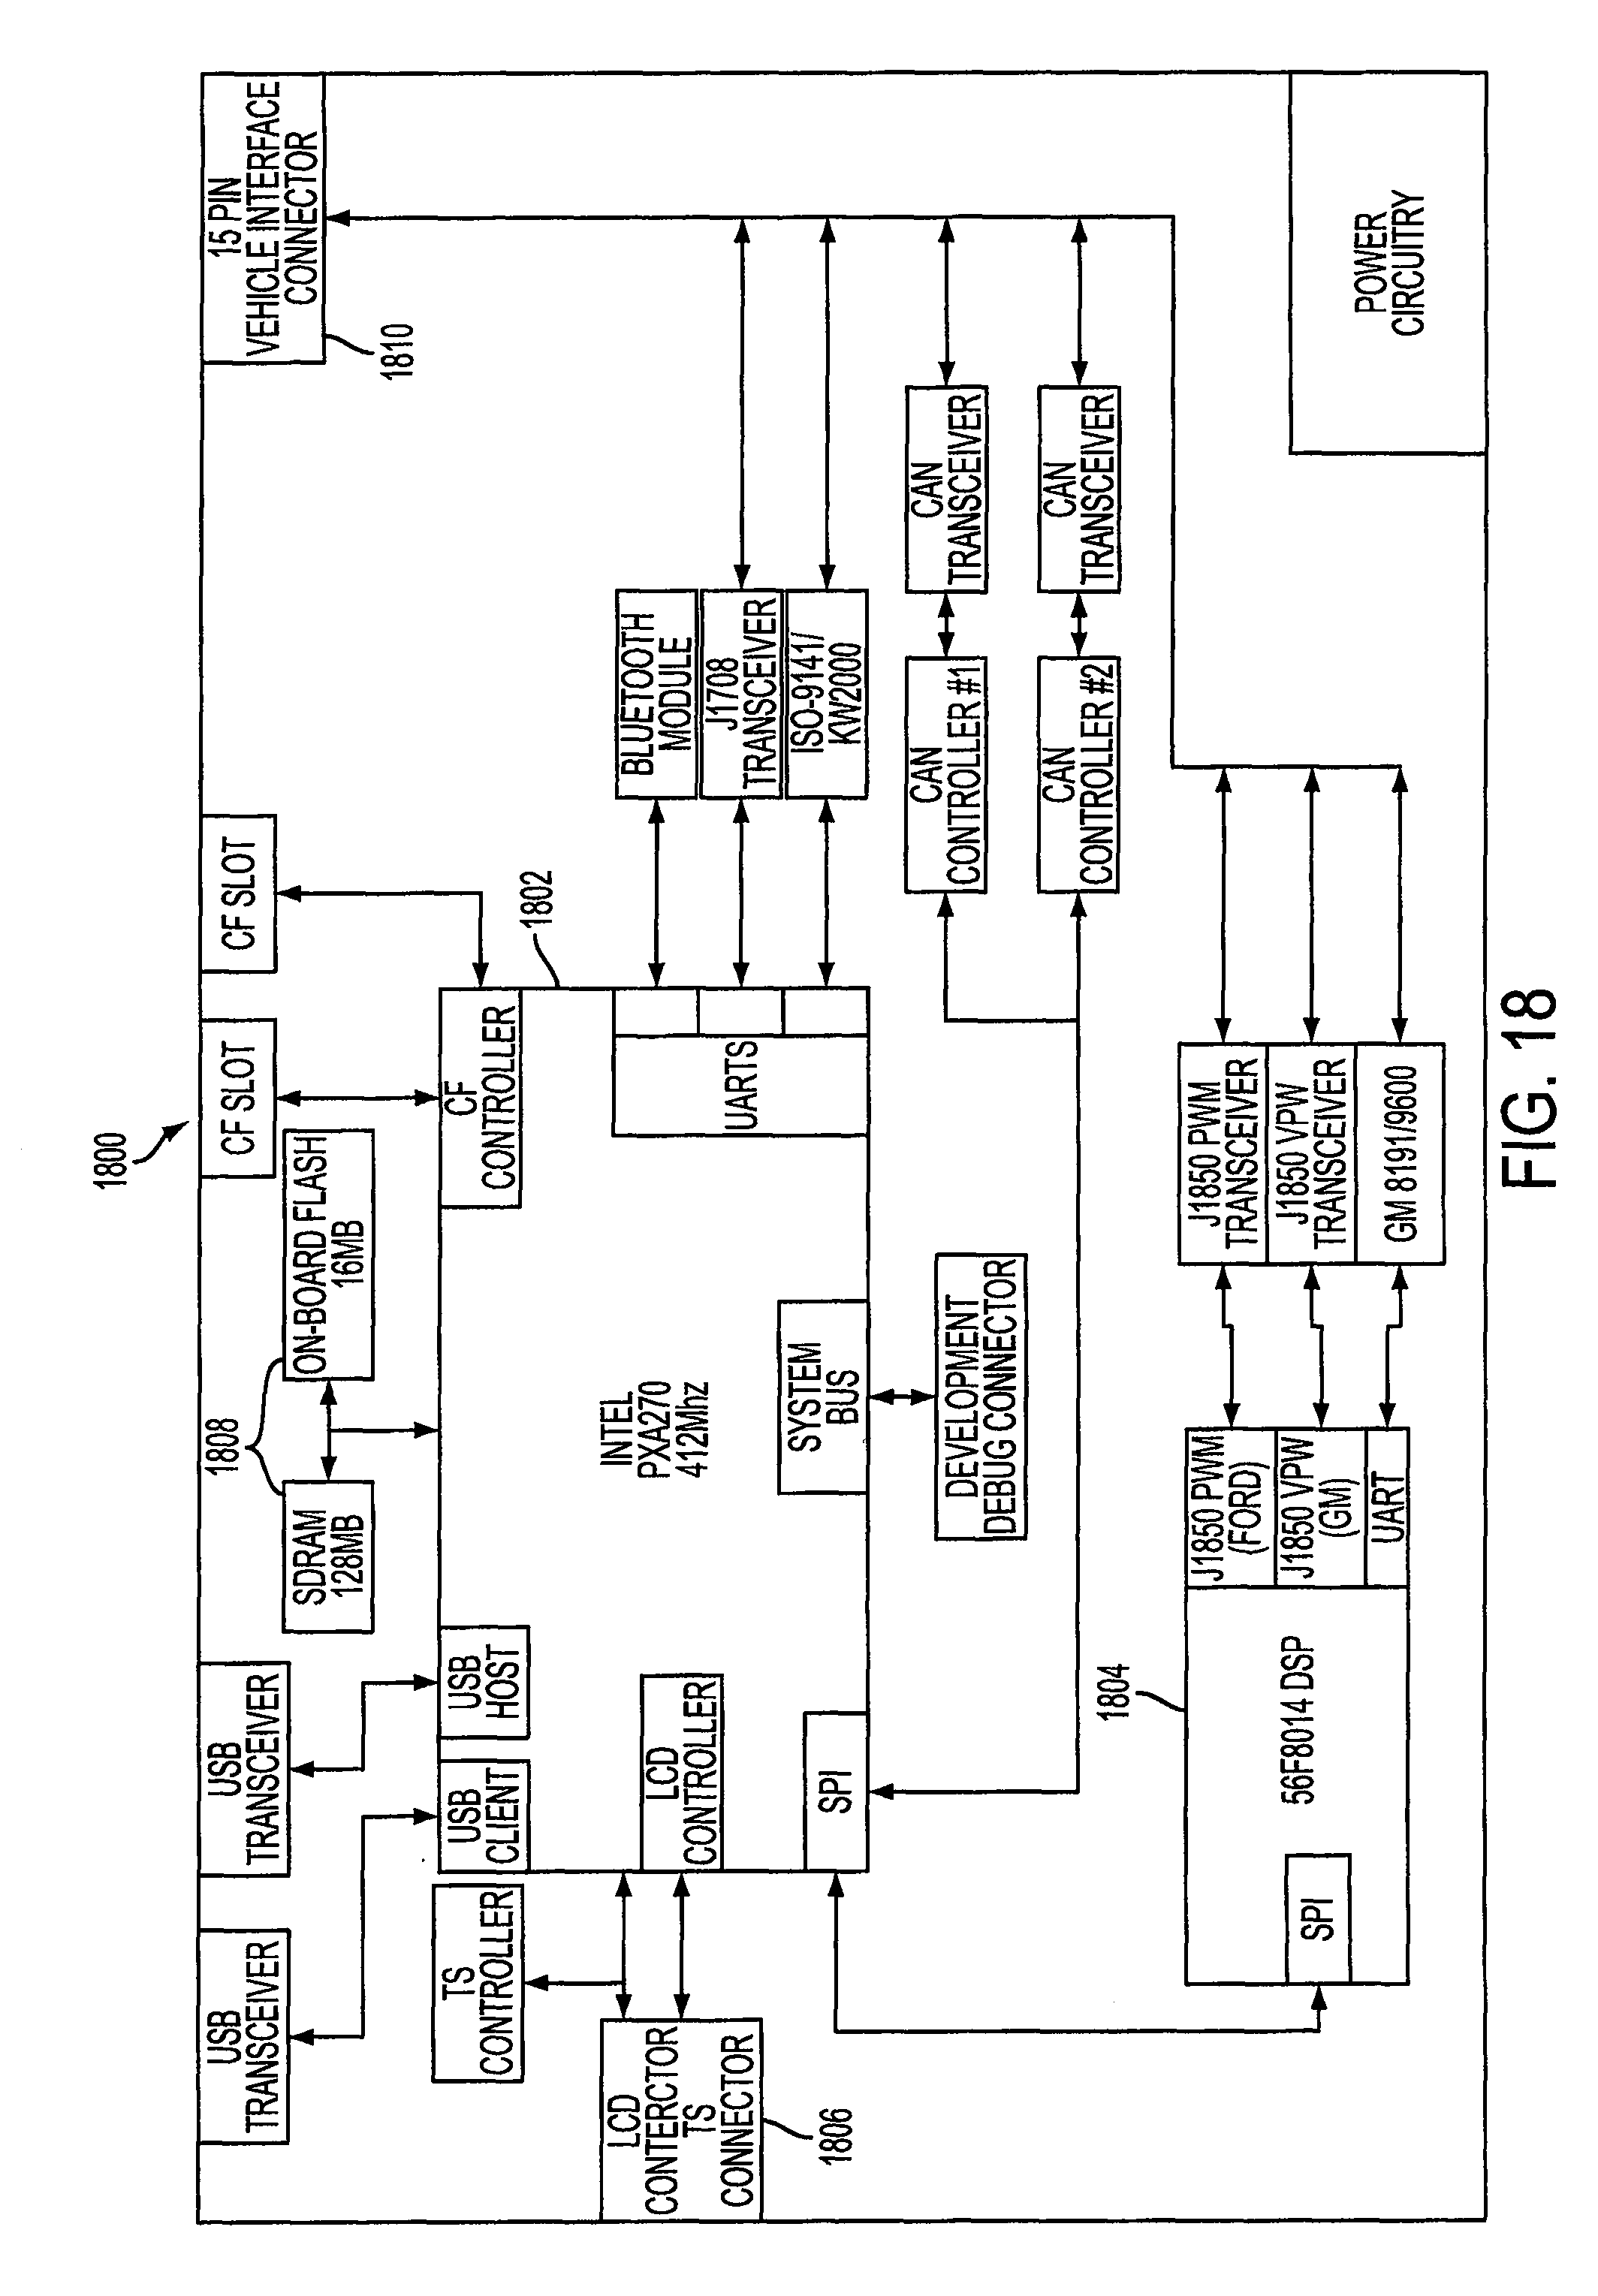 Patent US20100205450 - Vehicle diagnostic tool with copy